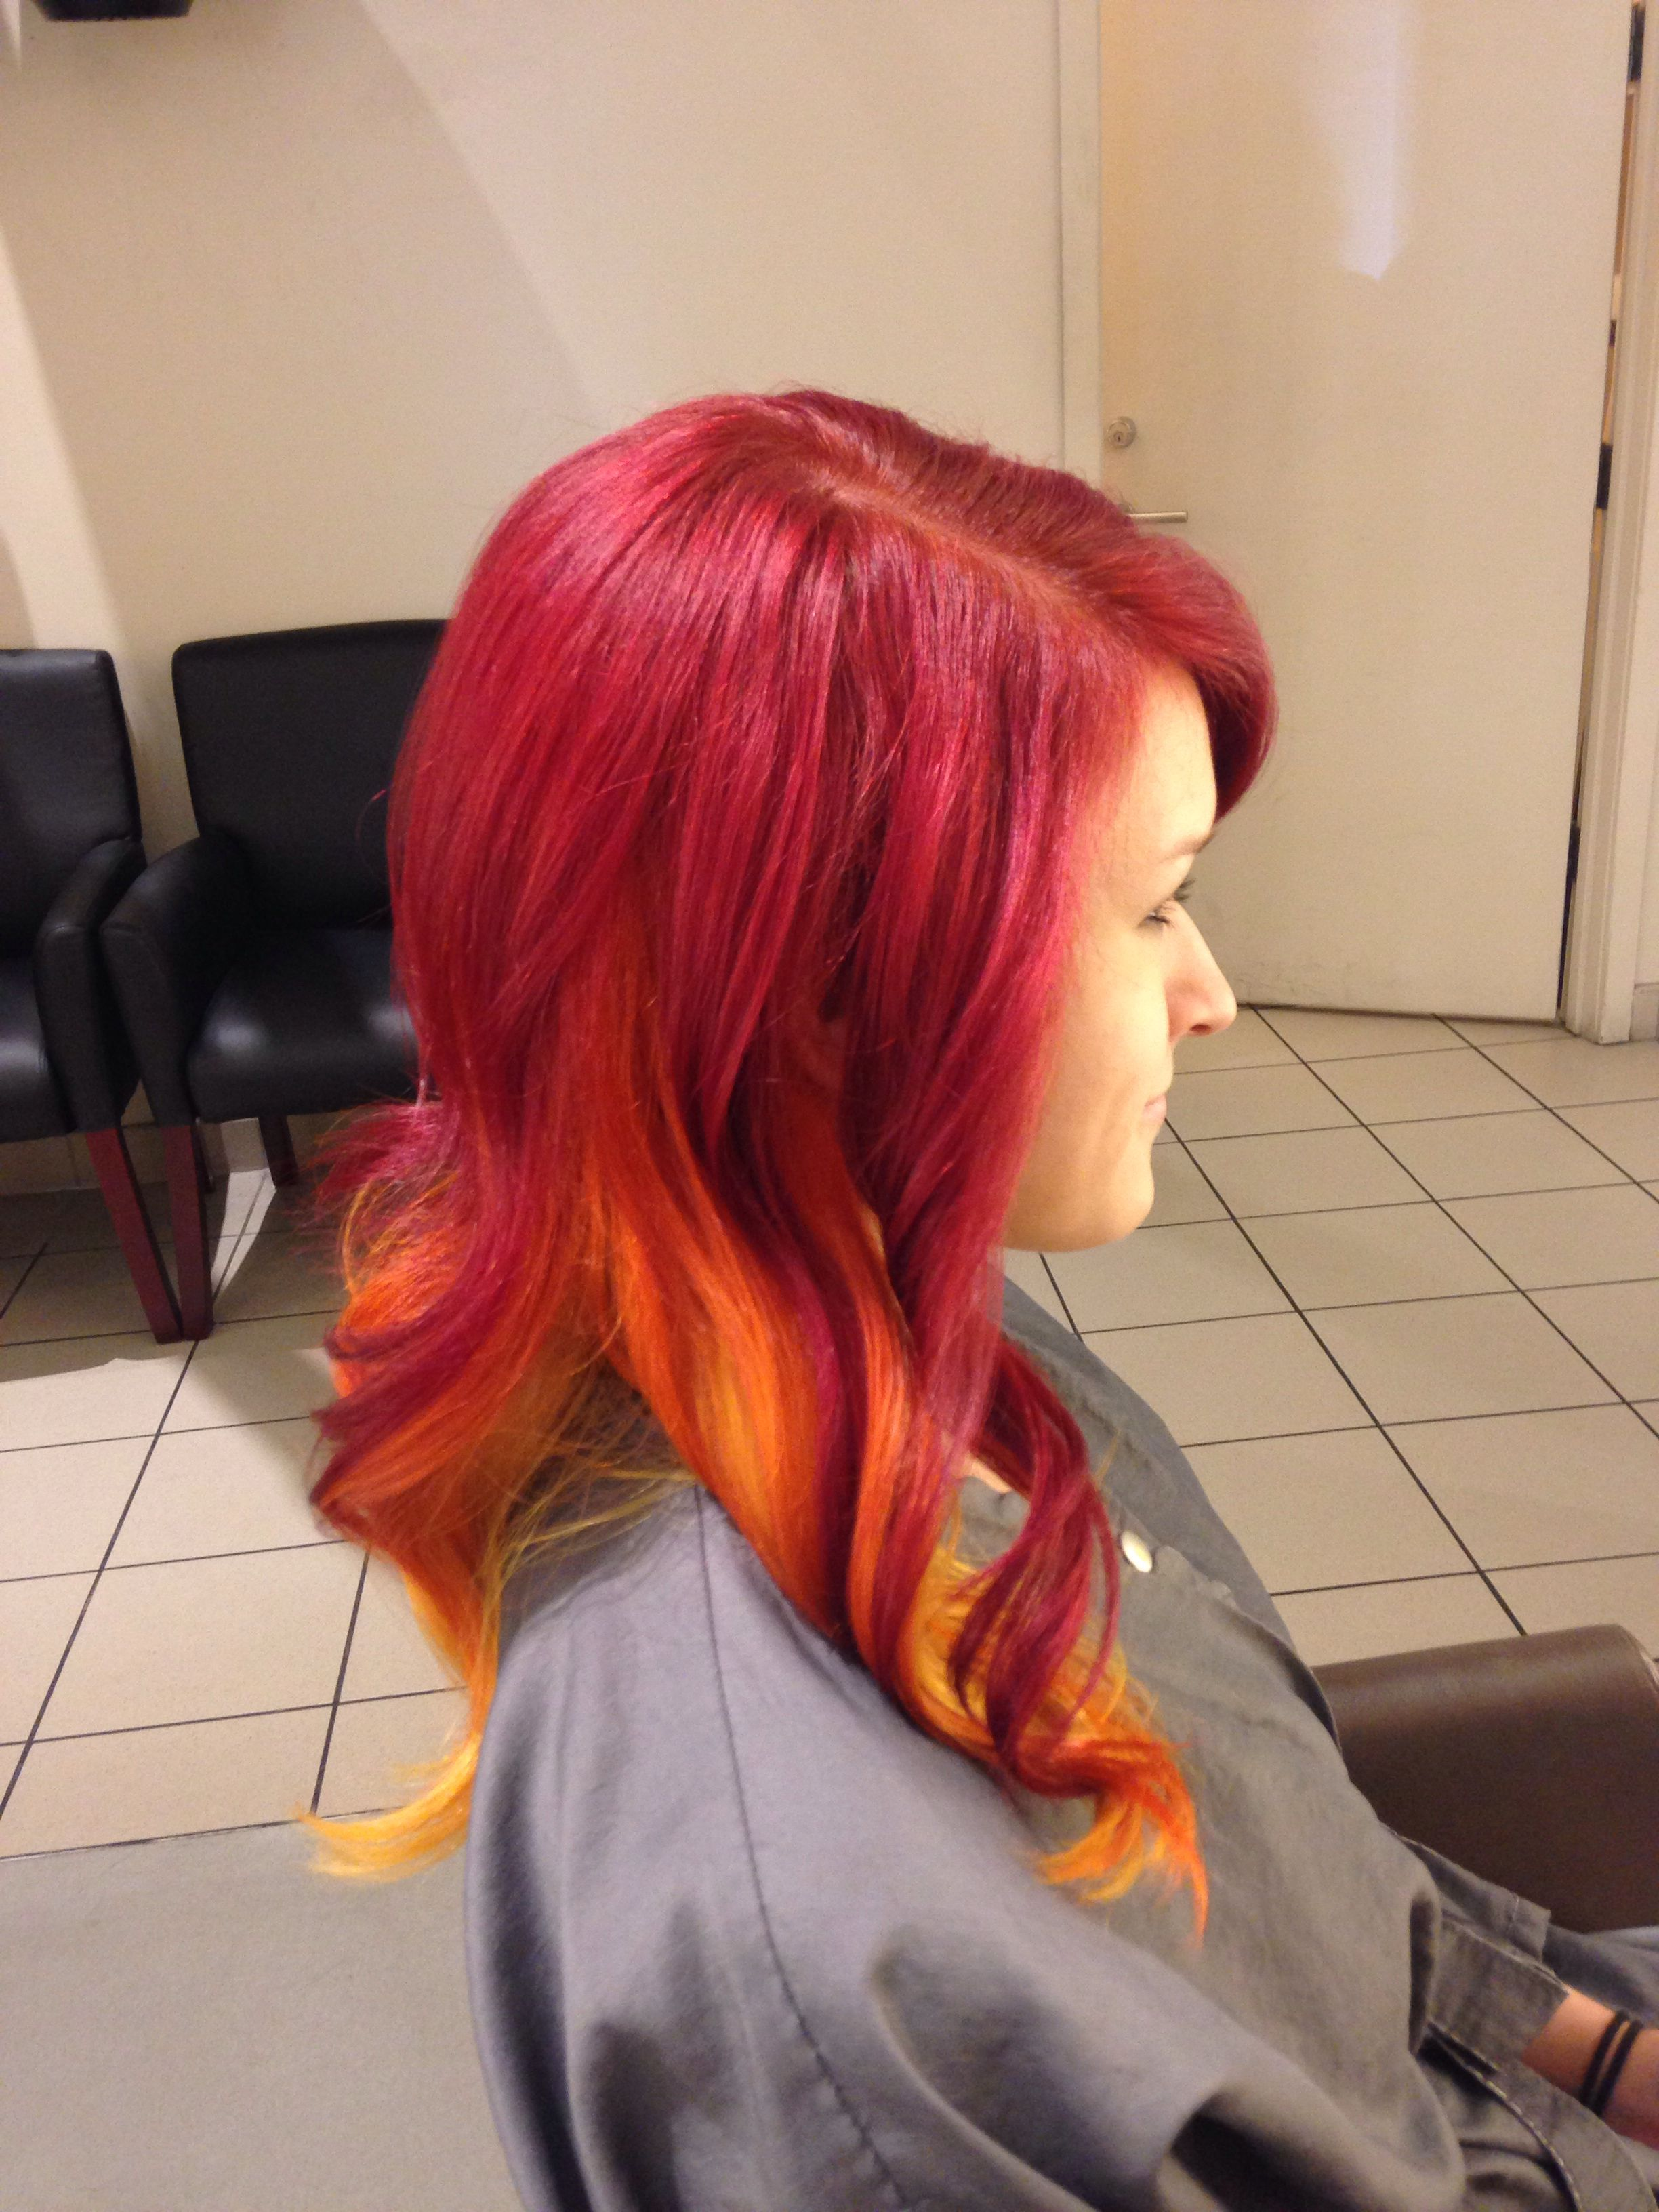 Red ombré hair #fire